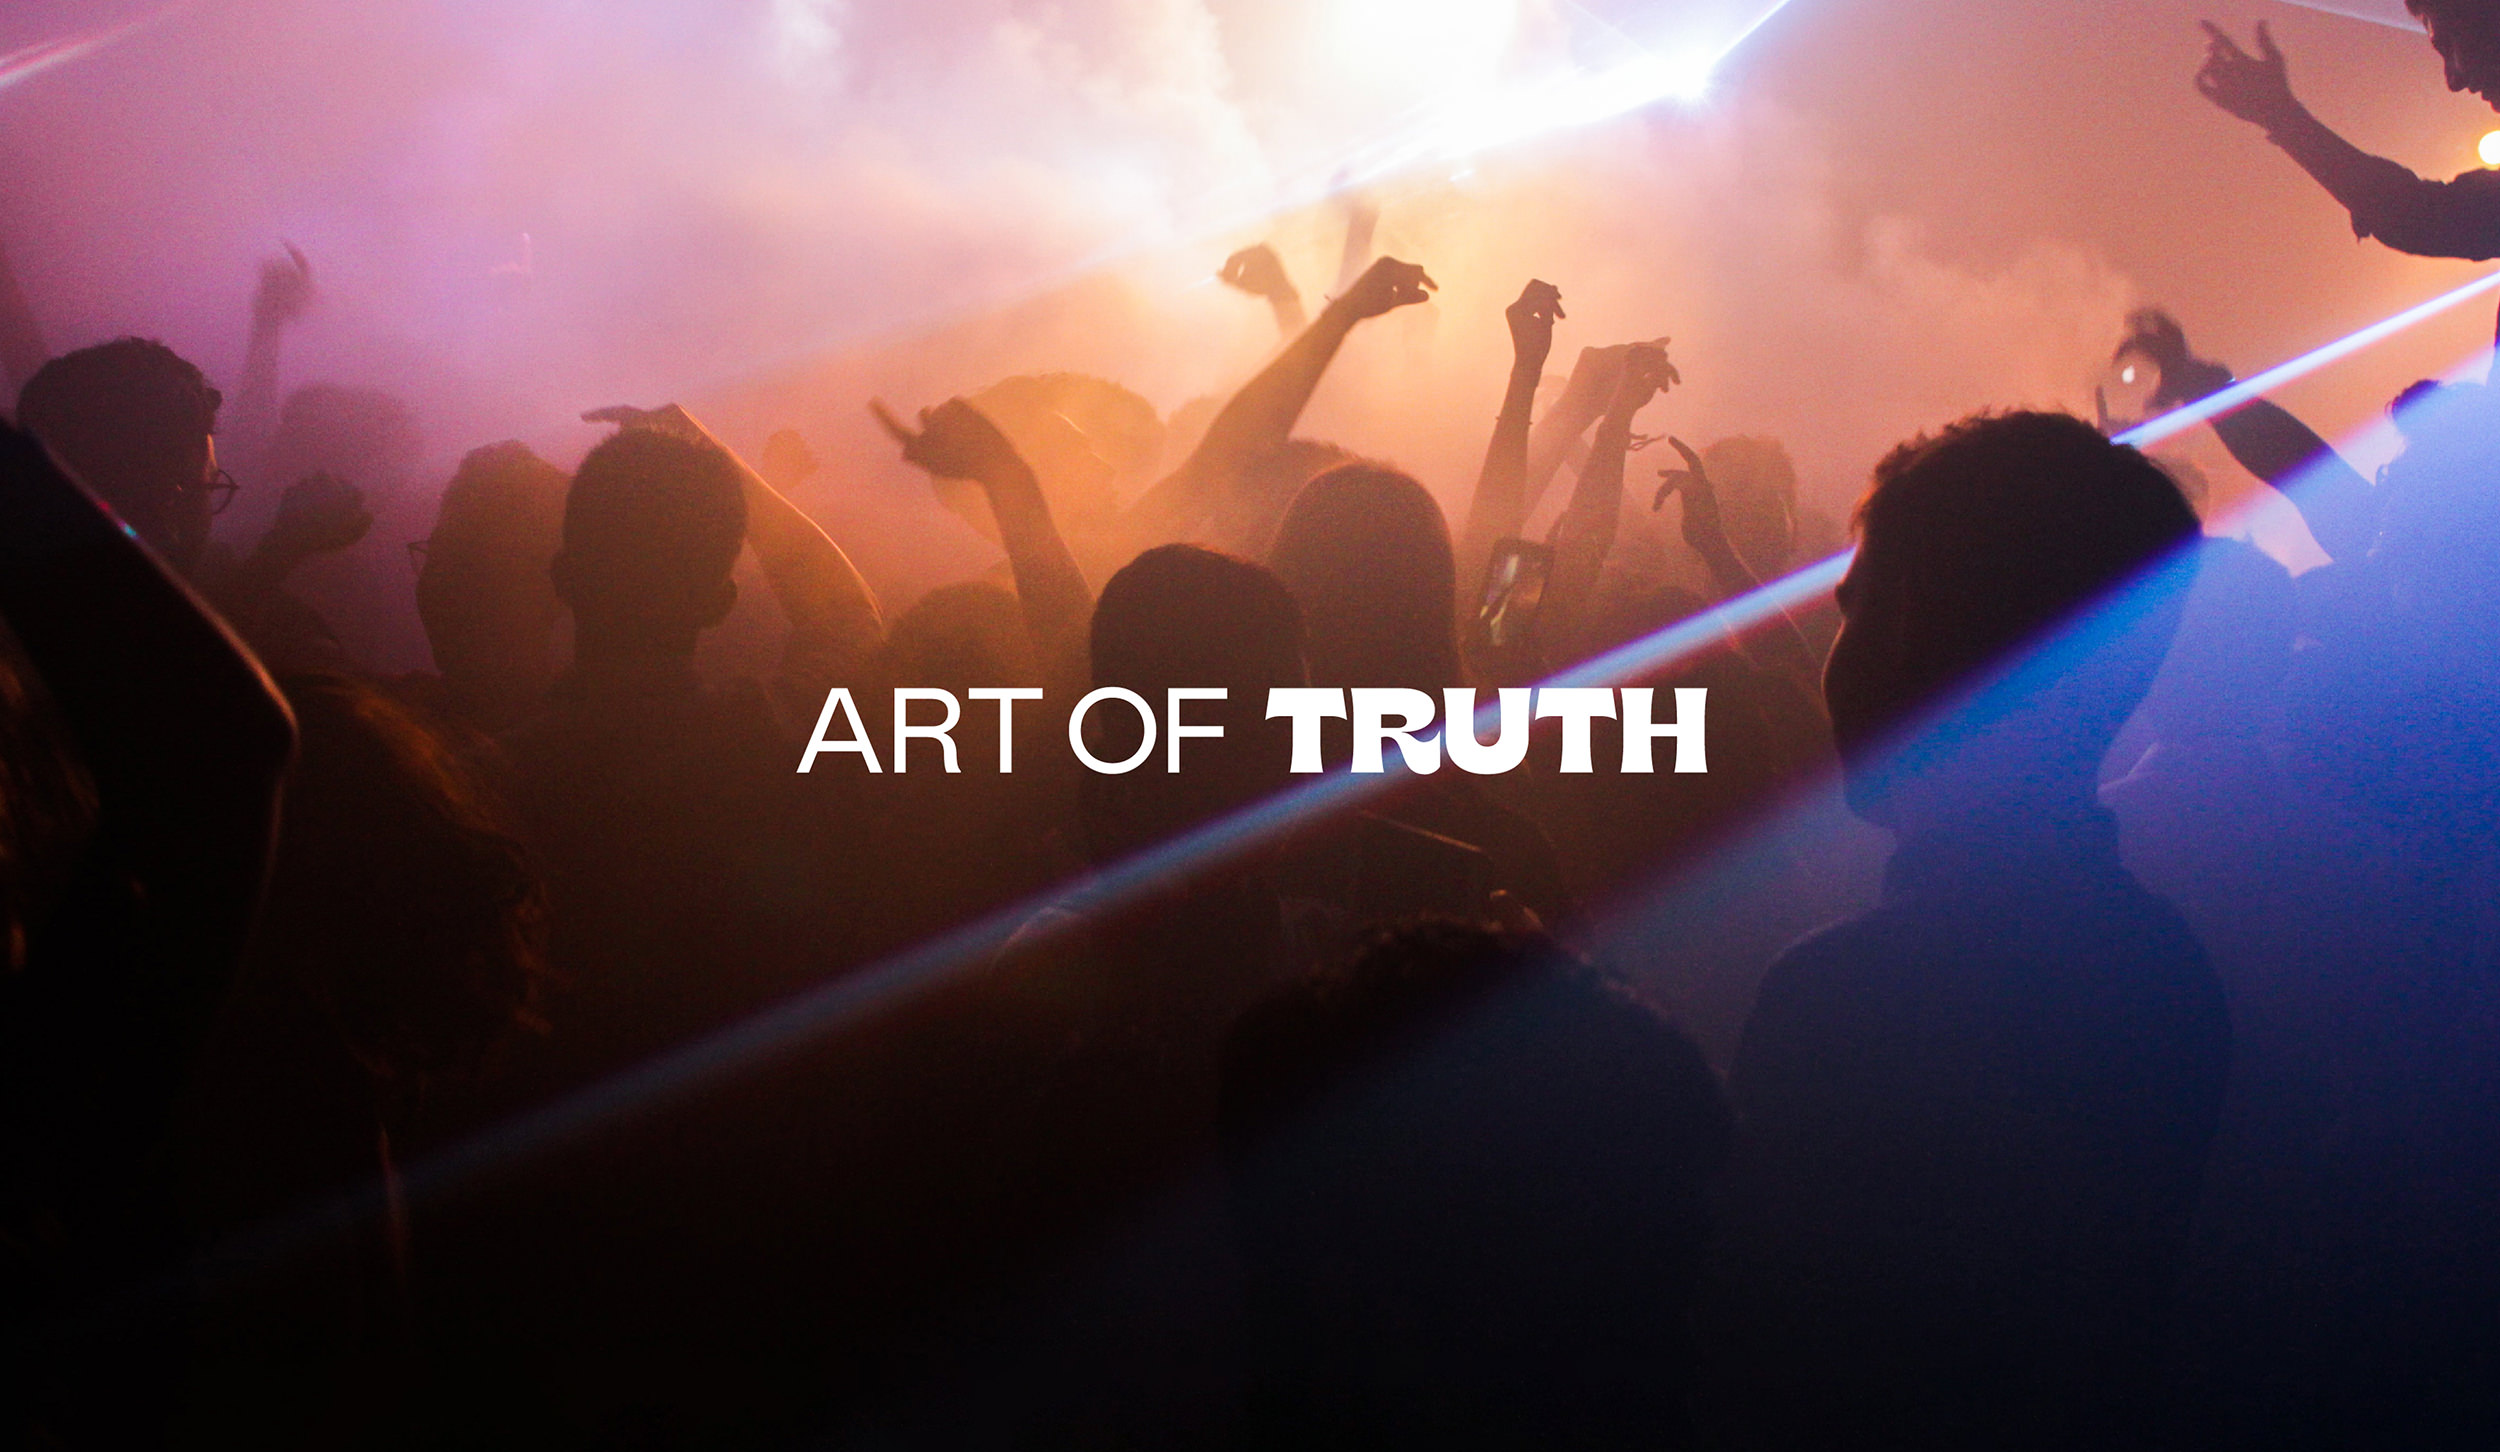 art of truth logo and imagery